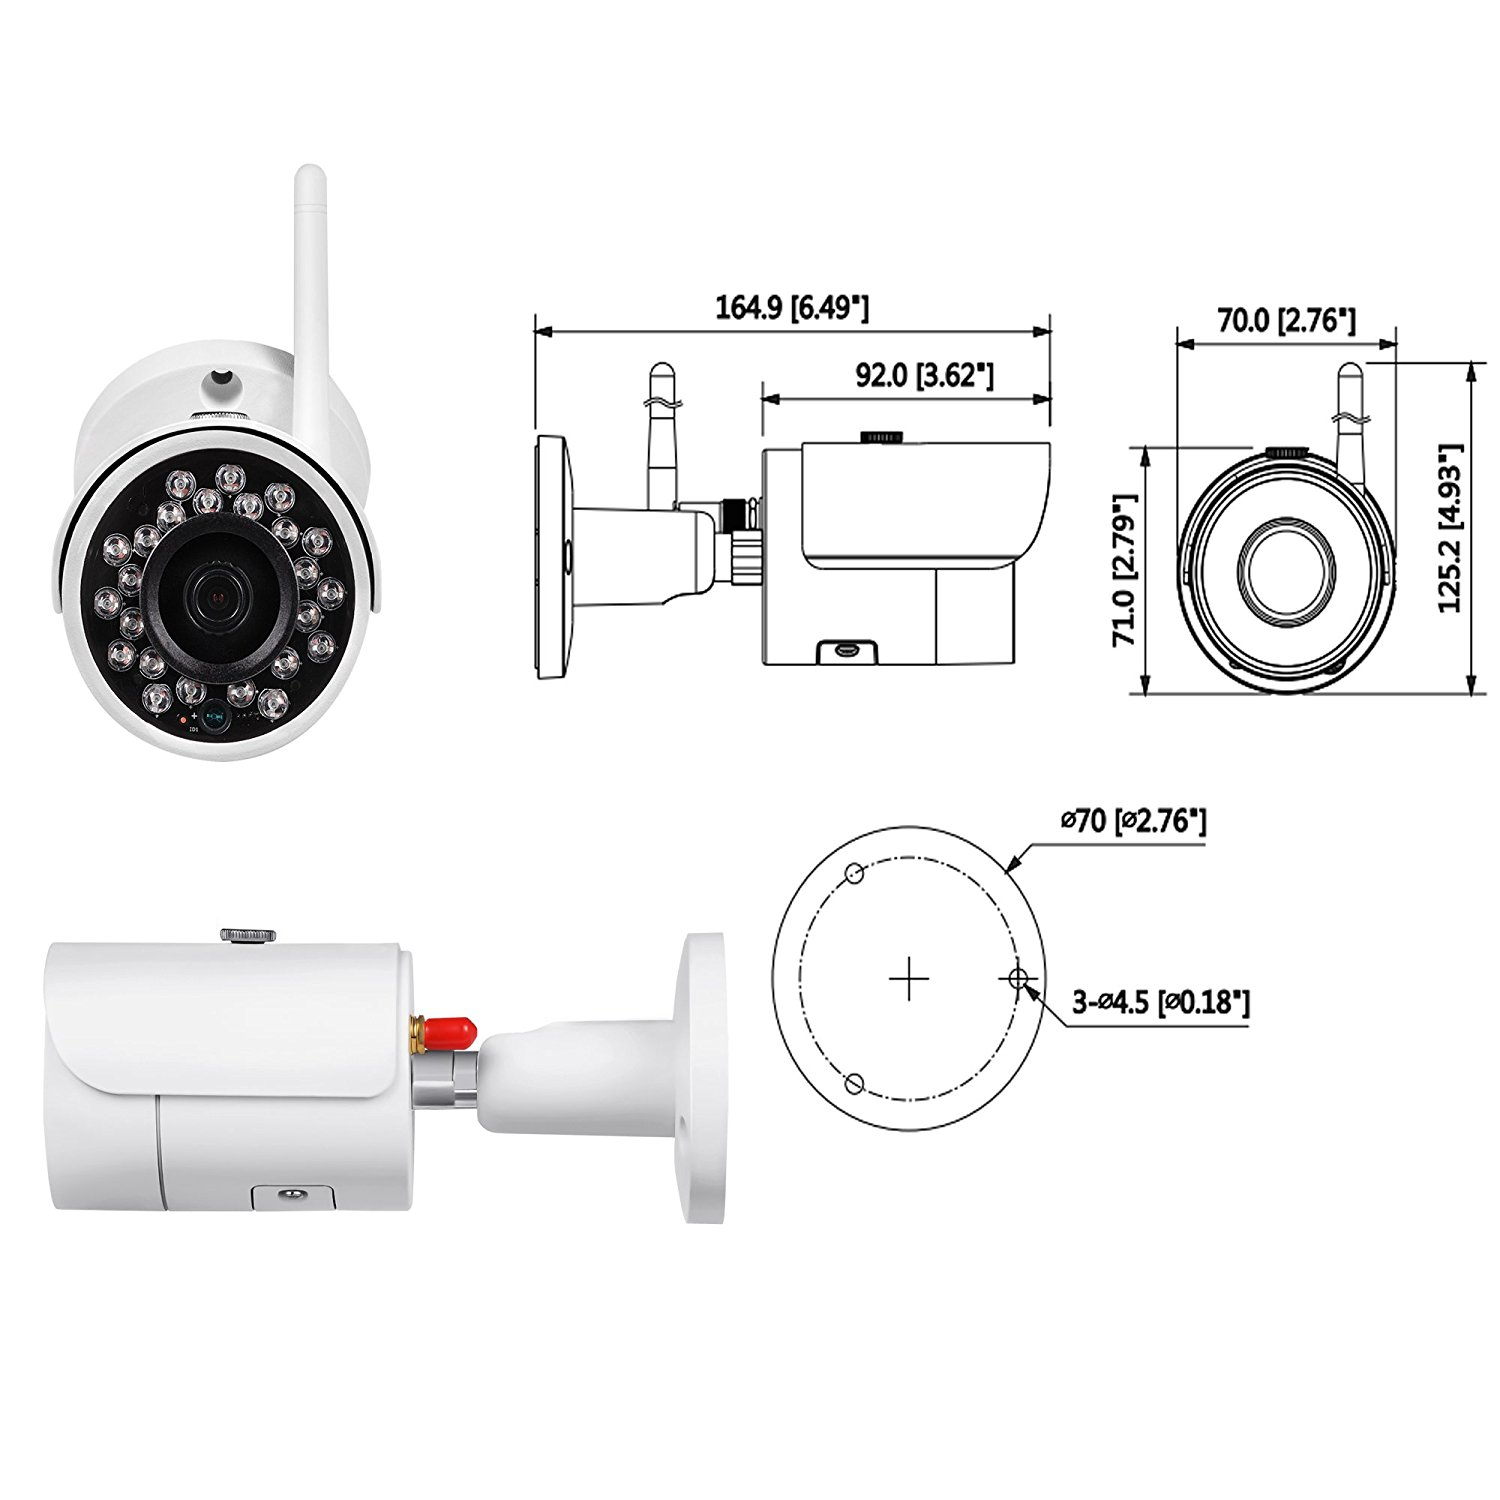 IPC-HFW1320S-W Dahua CCTV IP Wifi Outdoor Mini-Bullet camera 3.6MM 3MP IR HD 1080P